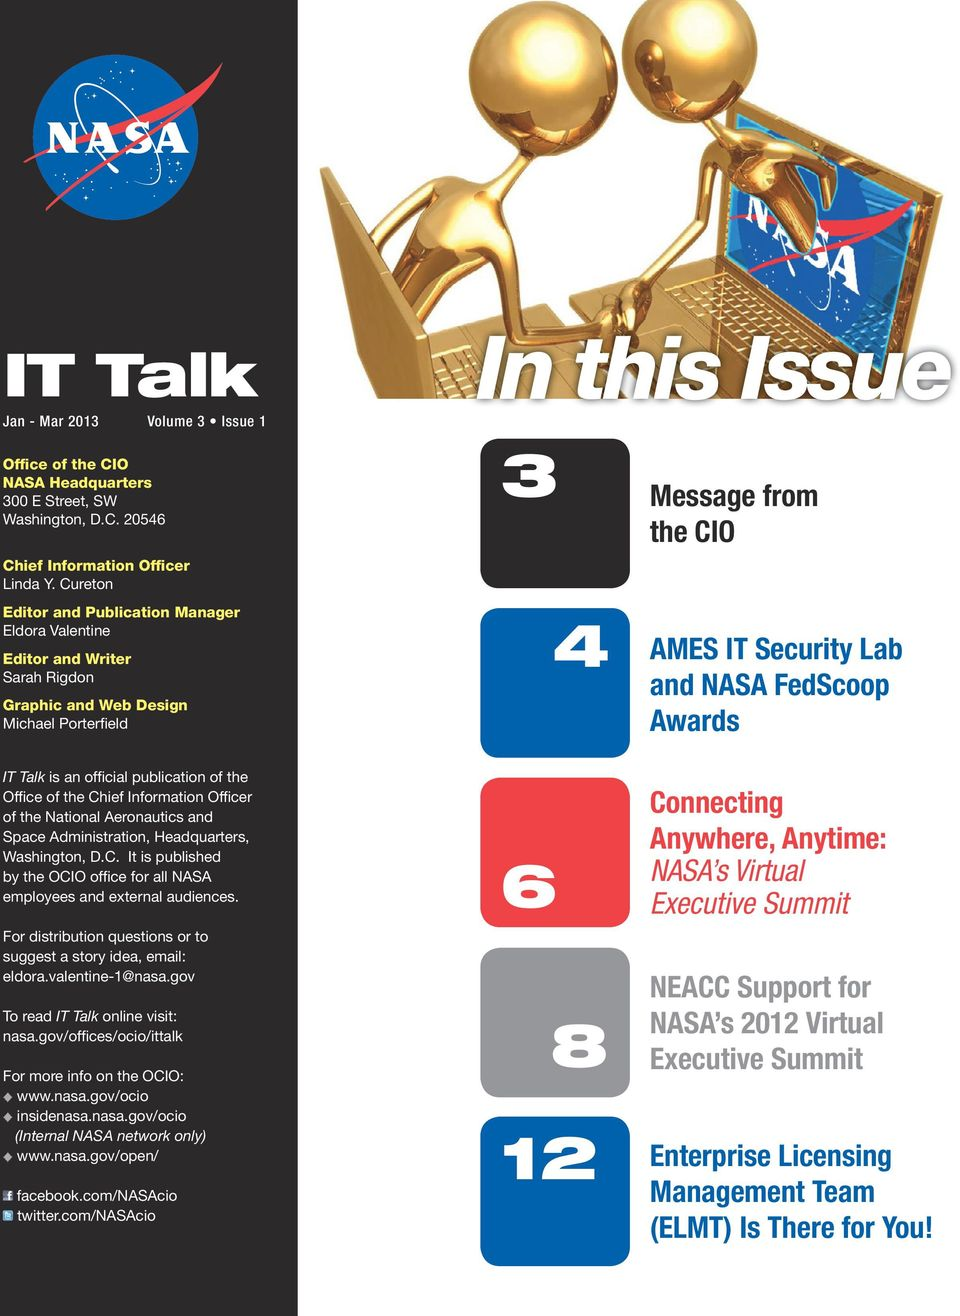 Awards IT Talk is an official publication of the Office of the Chief Information Officer of the National Aeronautics and Space Administration, Headquarters, Washington, D.C. It is published by the OCIO office for all NASA employees and external audiences.